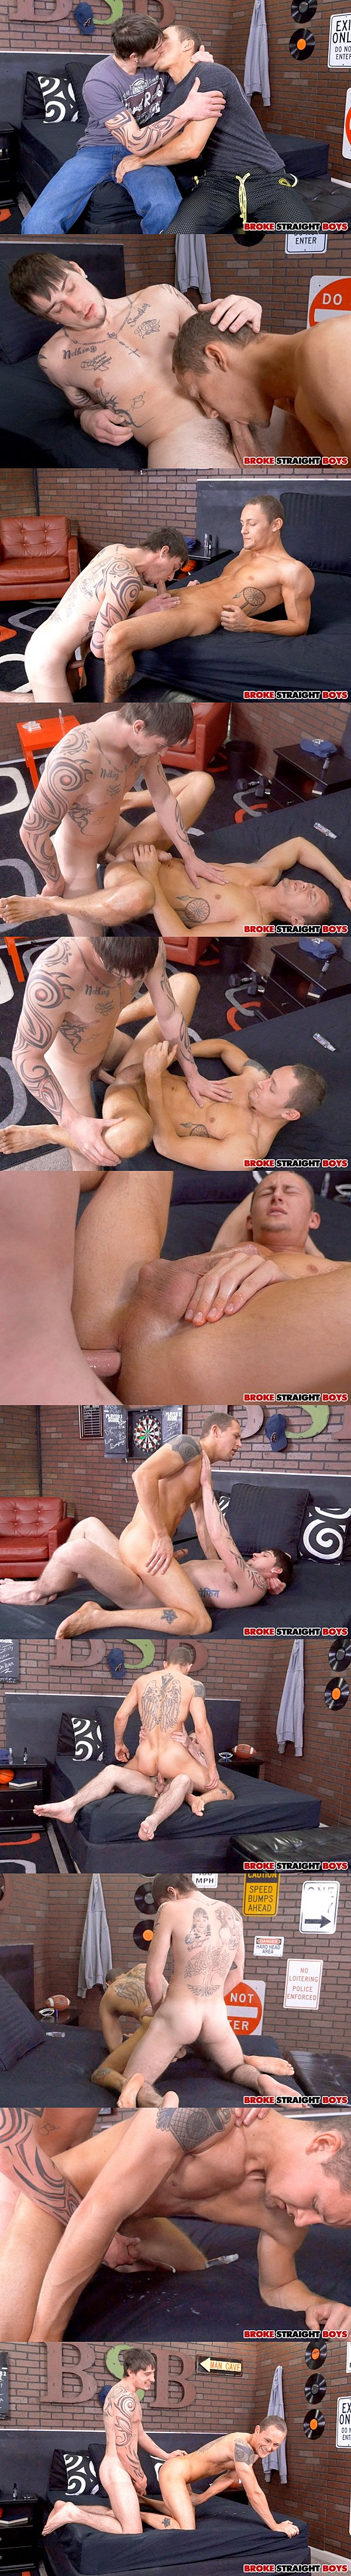 Cage Kafig barebacks hot ripped jock Trevor Laster before he fucks a big load out of Trevor at Brokestraightboys 02